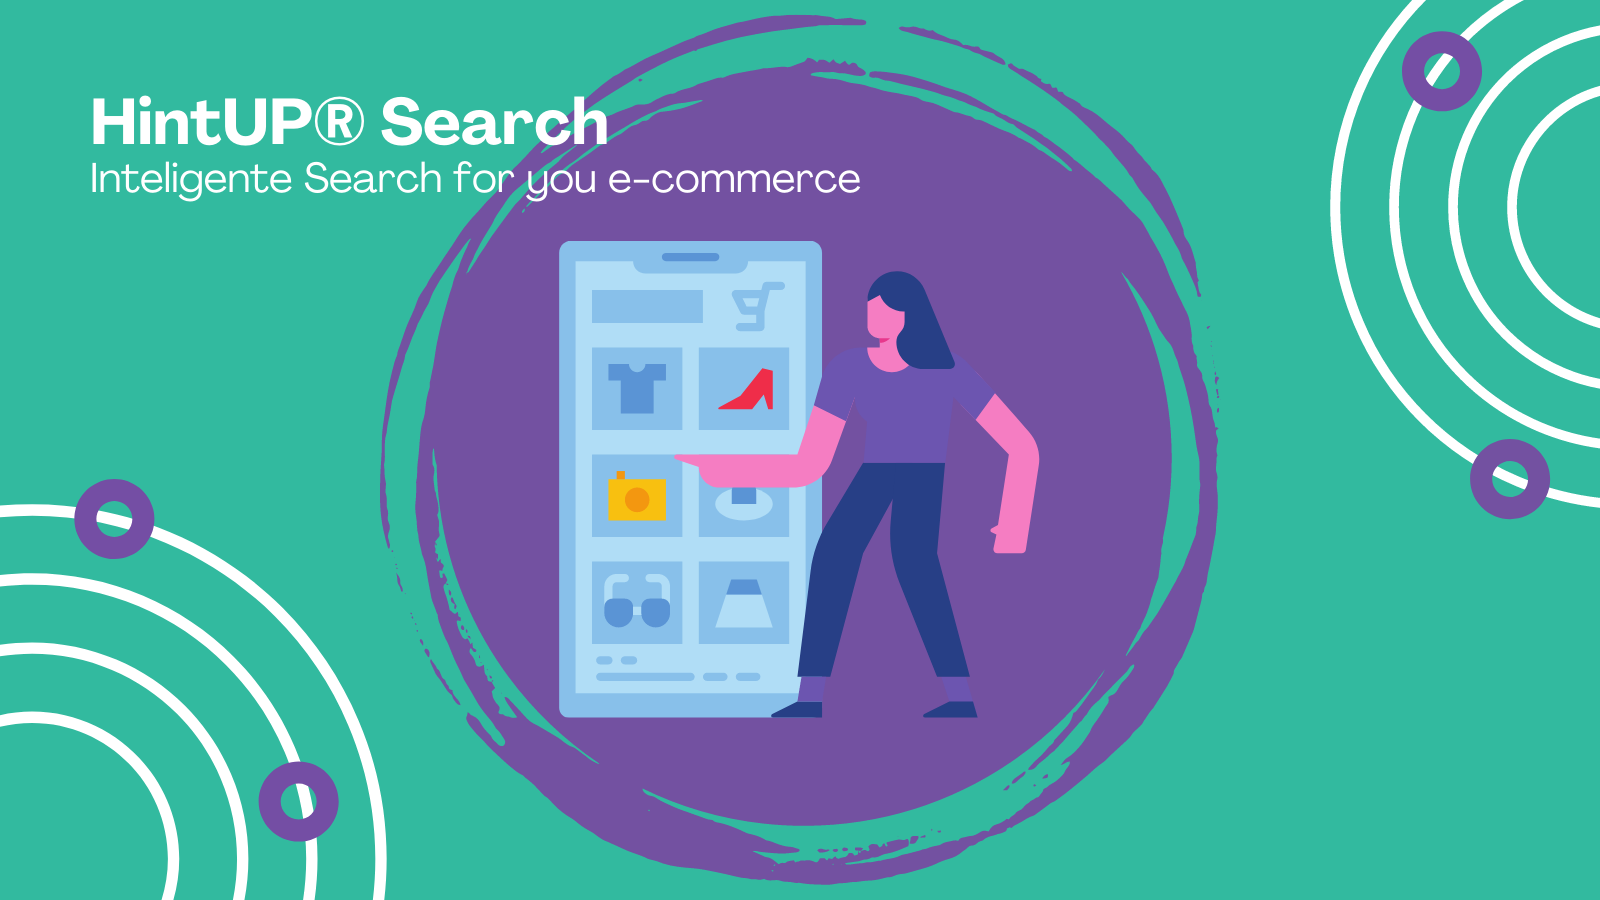 HintUP® Search - Inteligente Search for you e-commerce